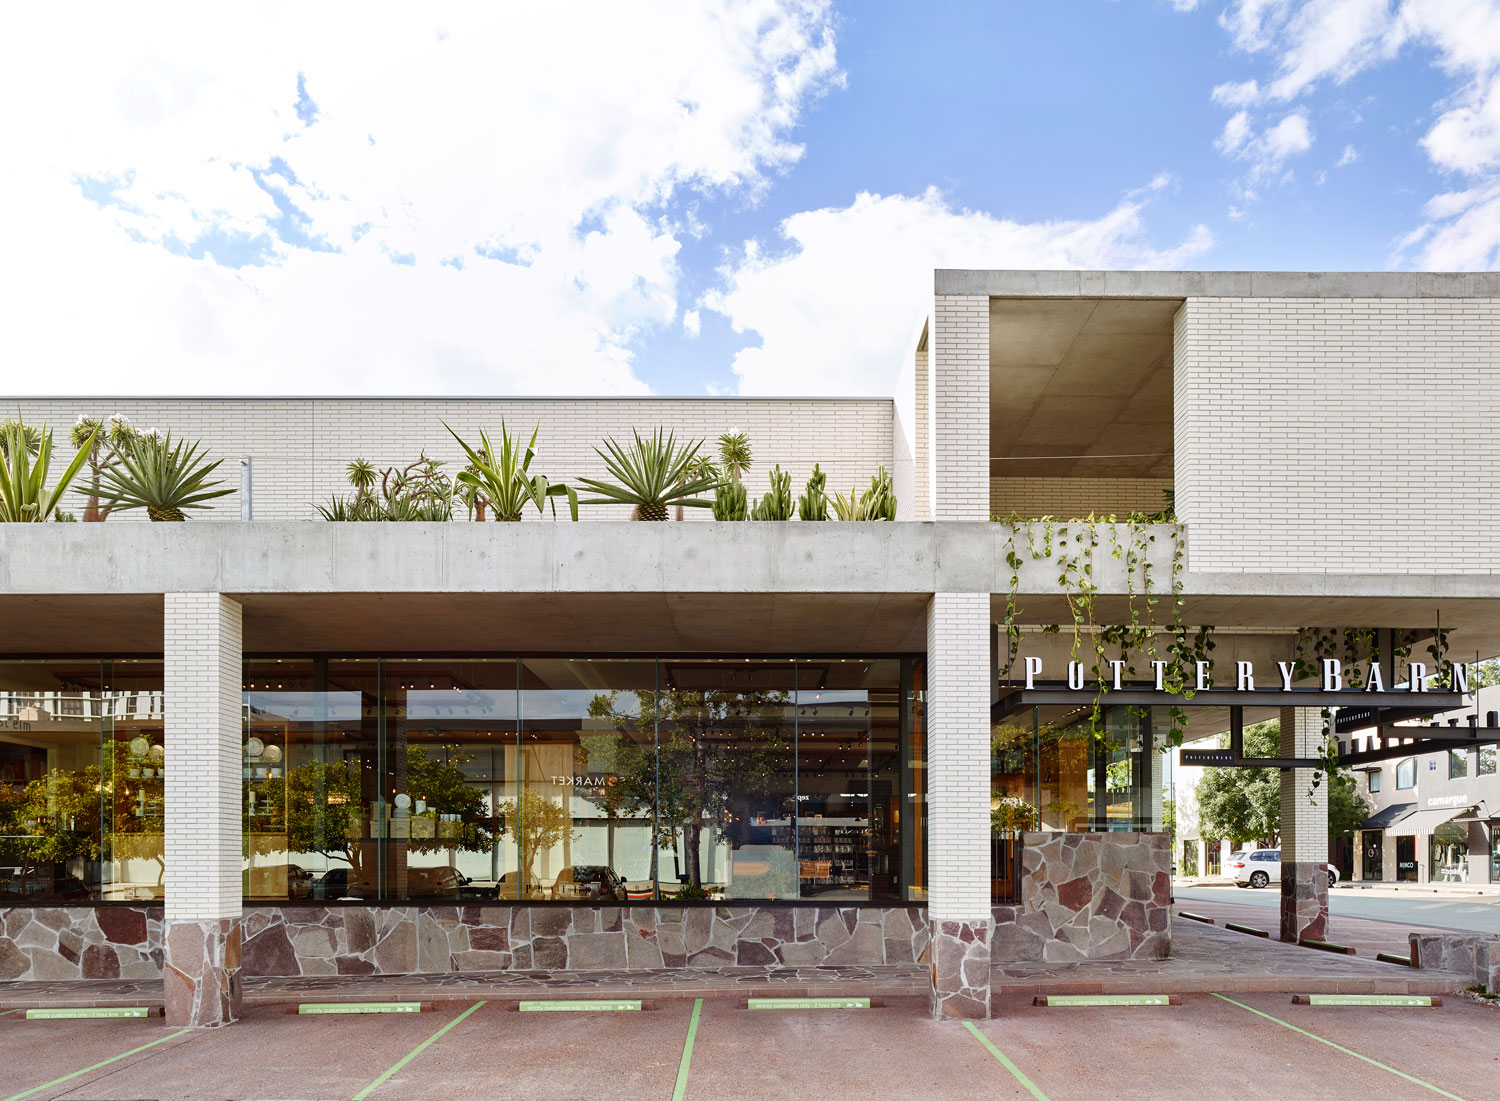 Wandoo Street by Richards & Spence | Yellowtrace